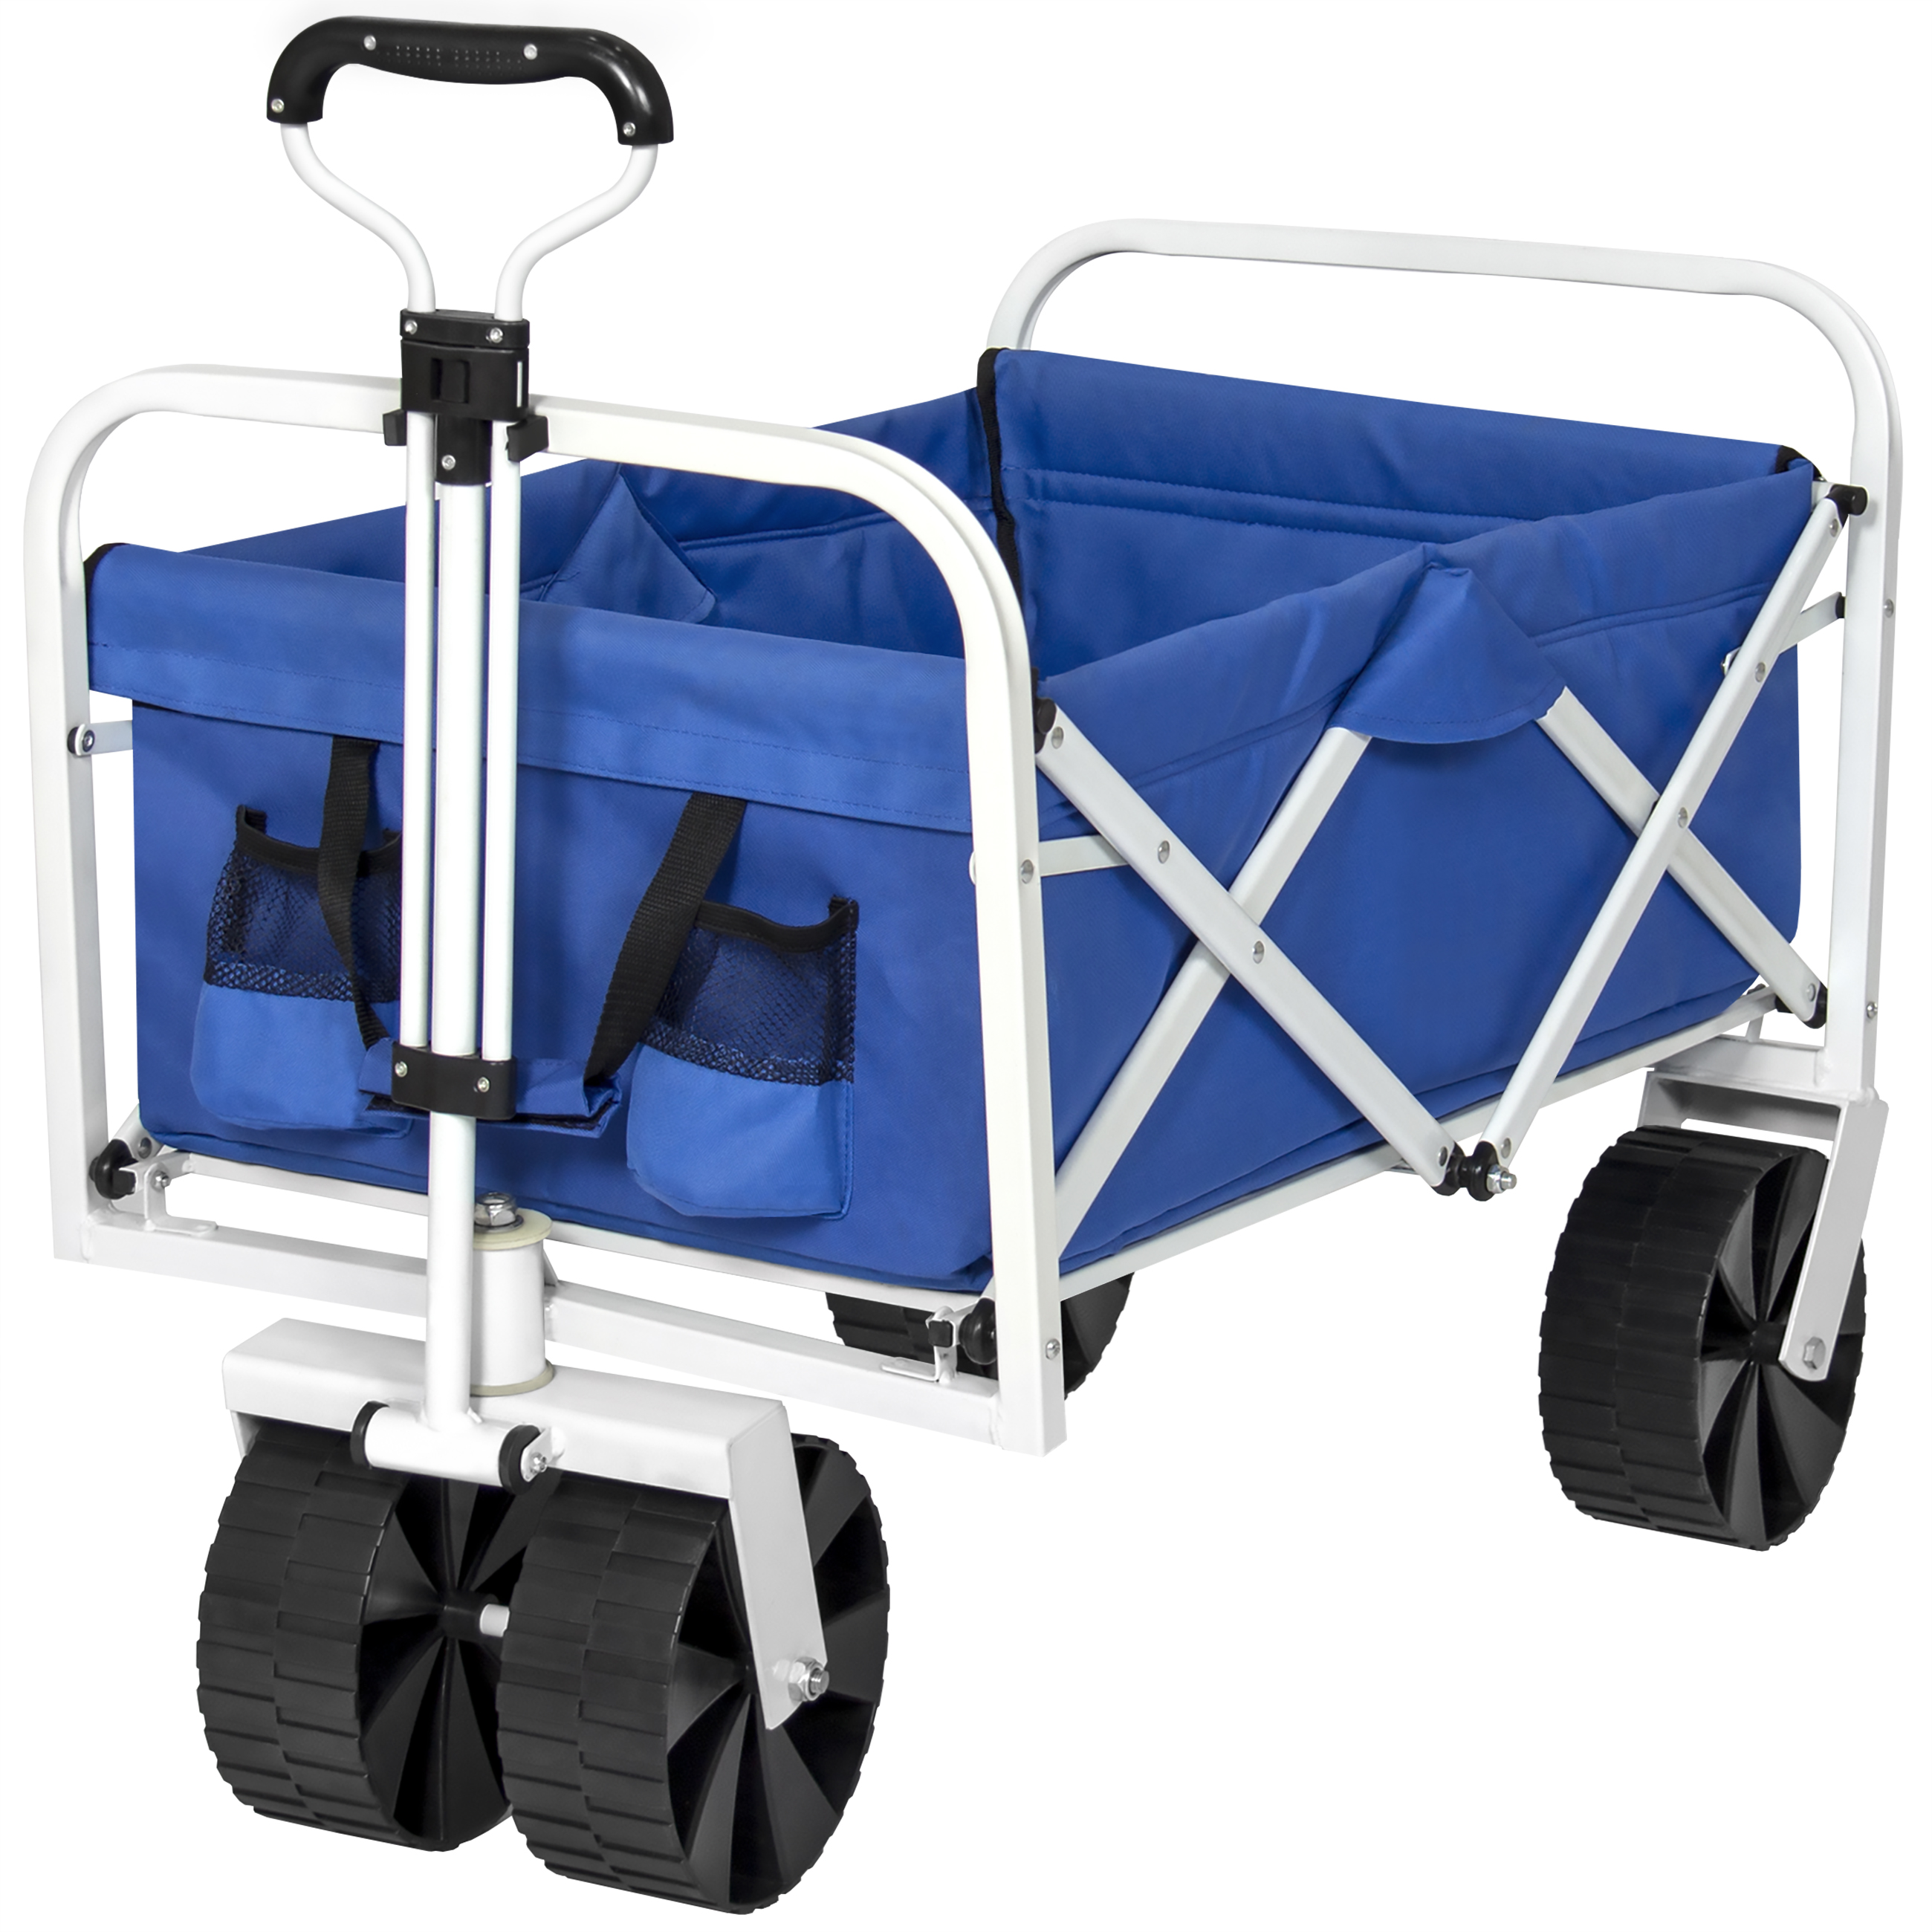 Color : Red ChenDz-S Climbing shopping cart folding portable la cart small cart luggage trolley home trolley car trolley trailer